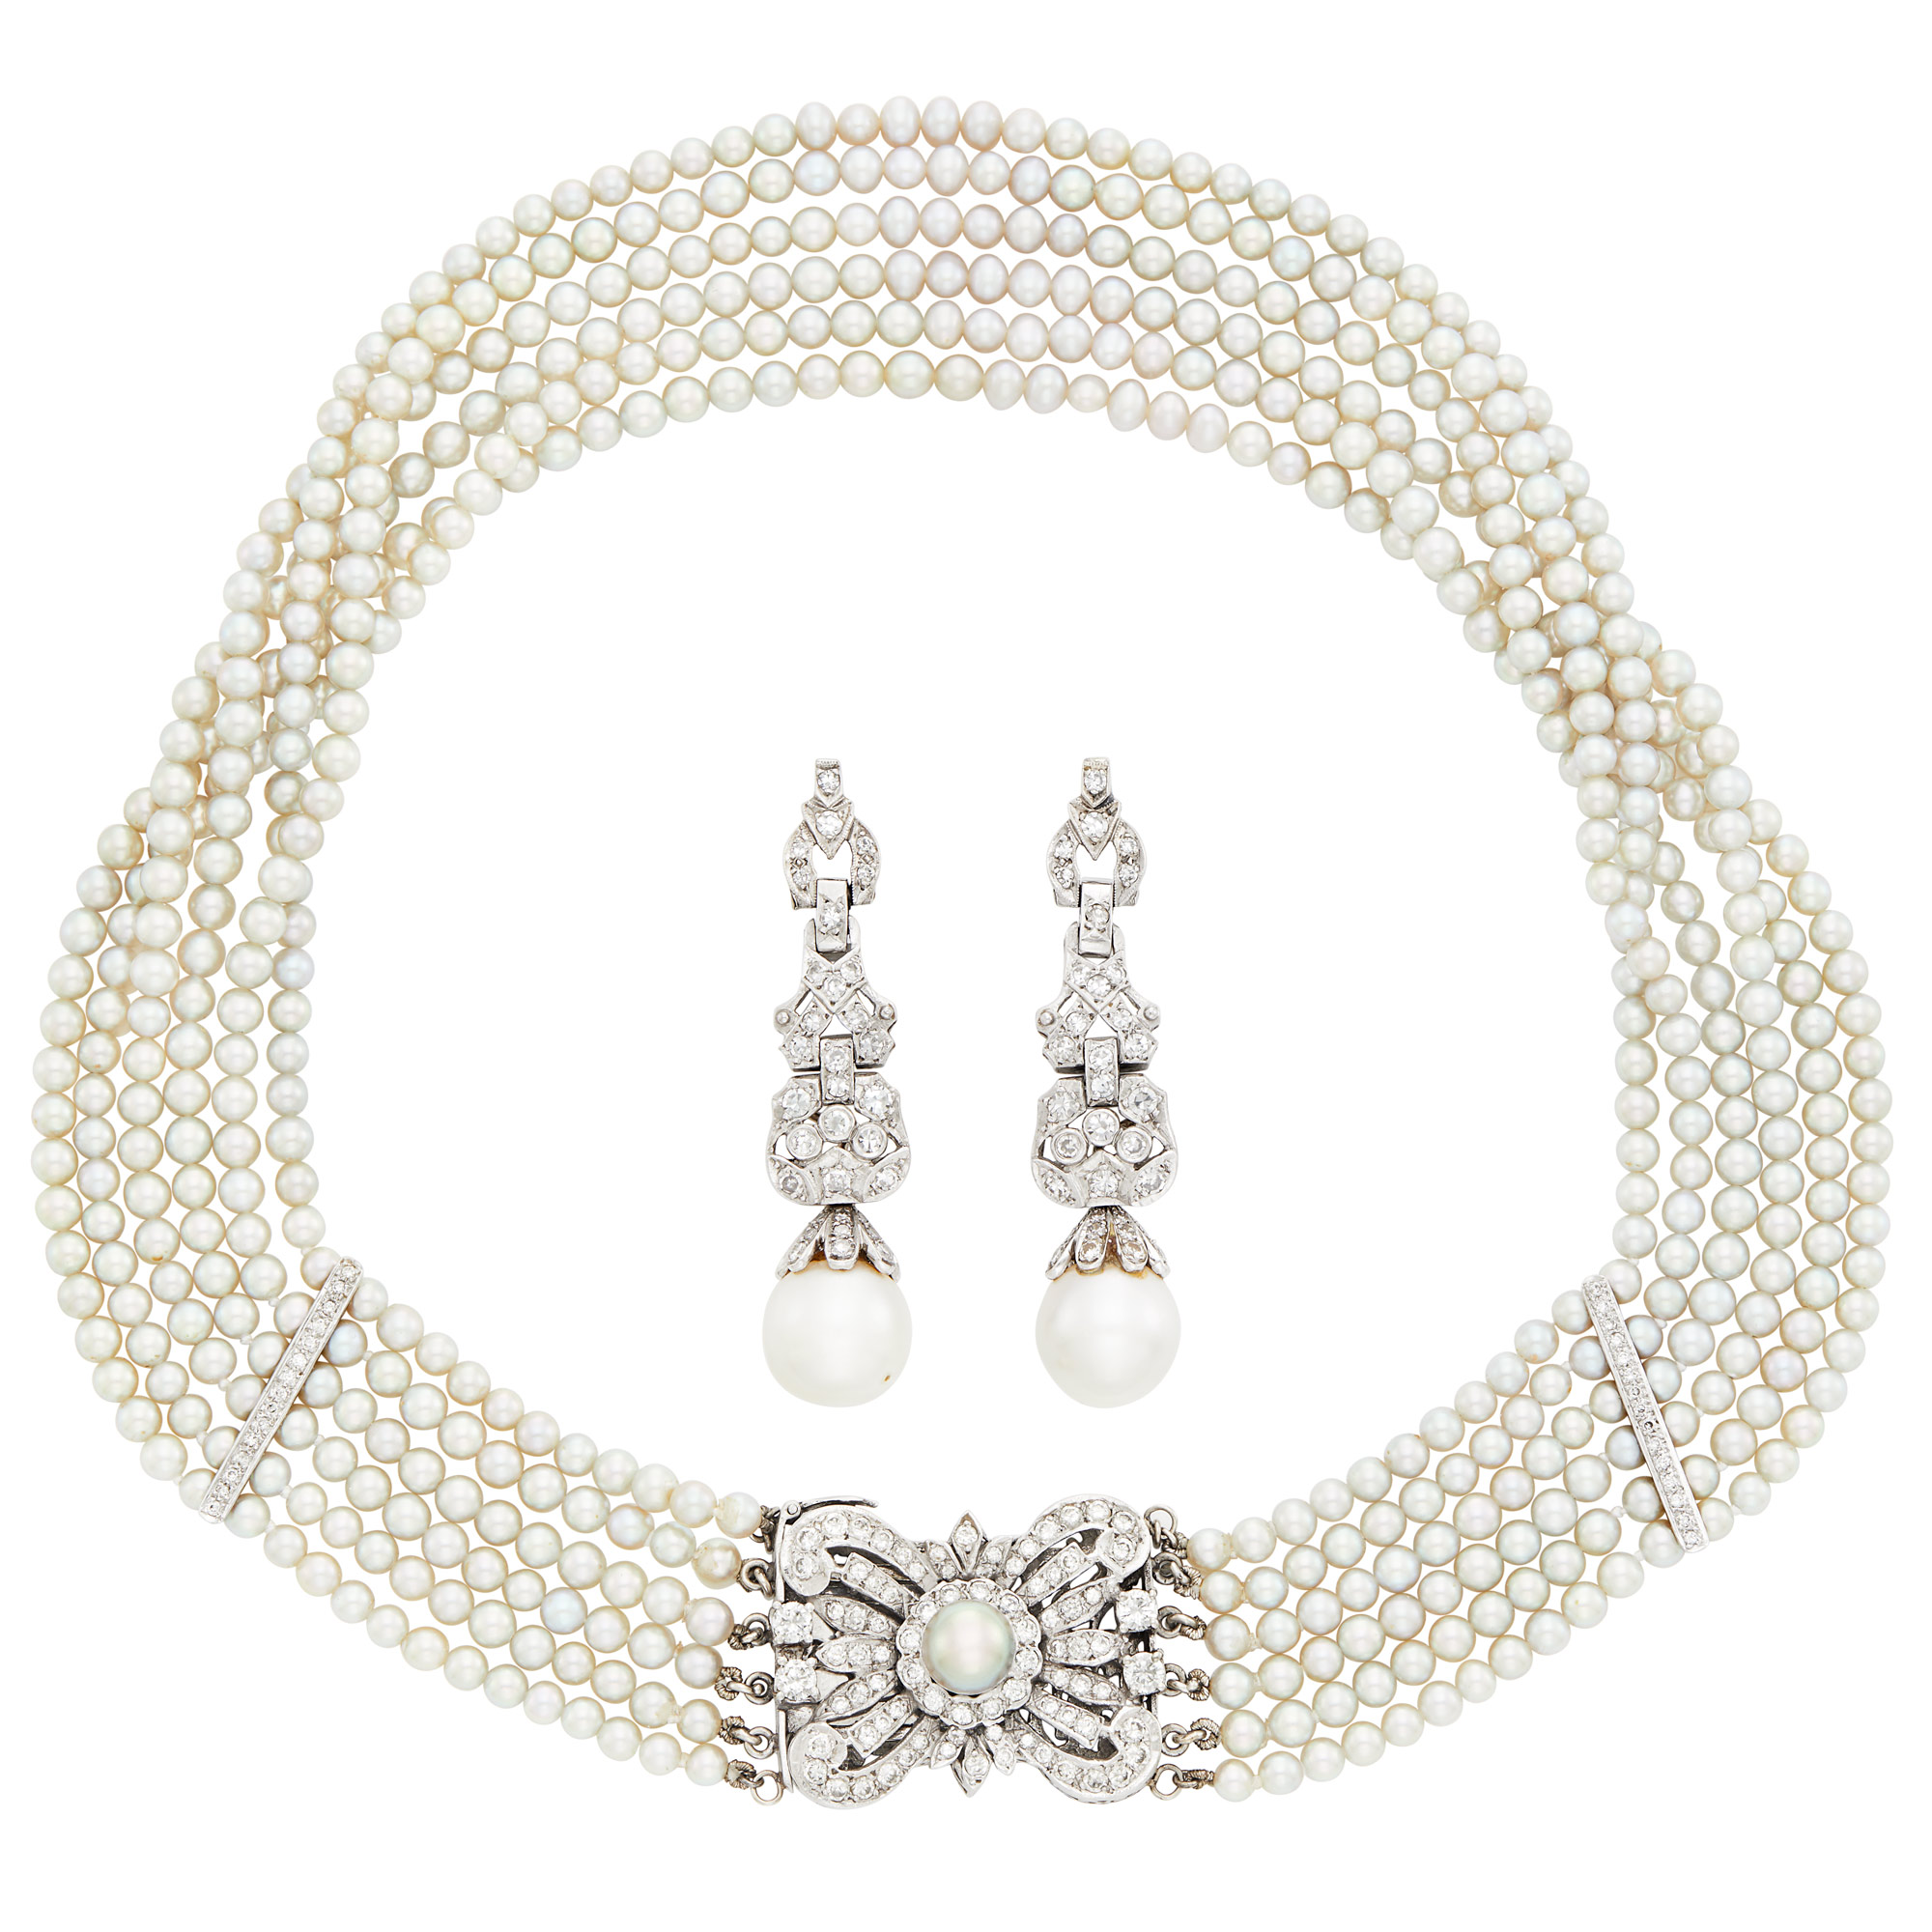 Lot image - Multistrand Cultured and Freshwater Pearl, White Gold and Diamond Necklace and Pair of Pendant-Earrings